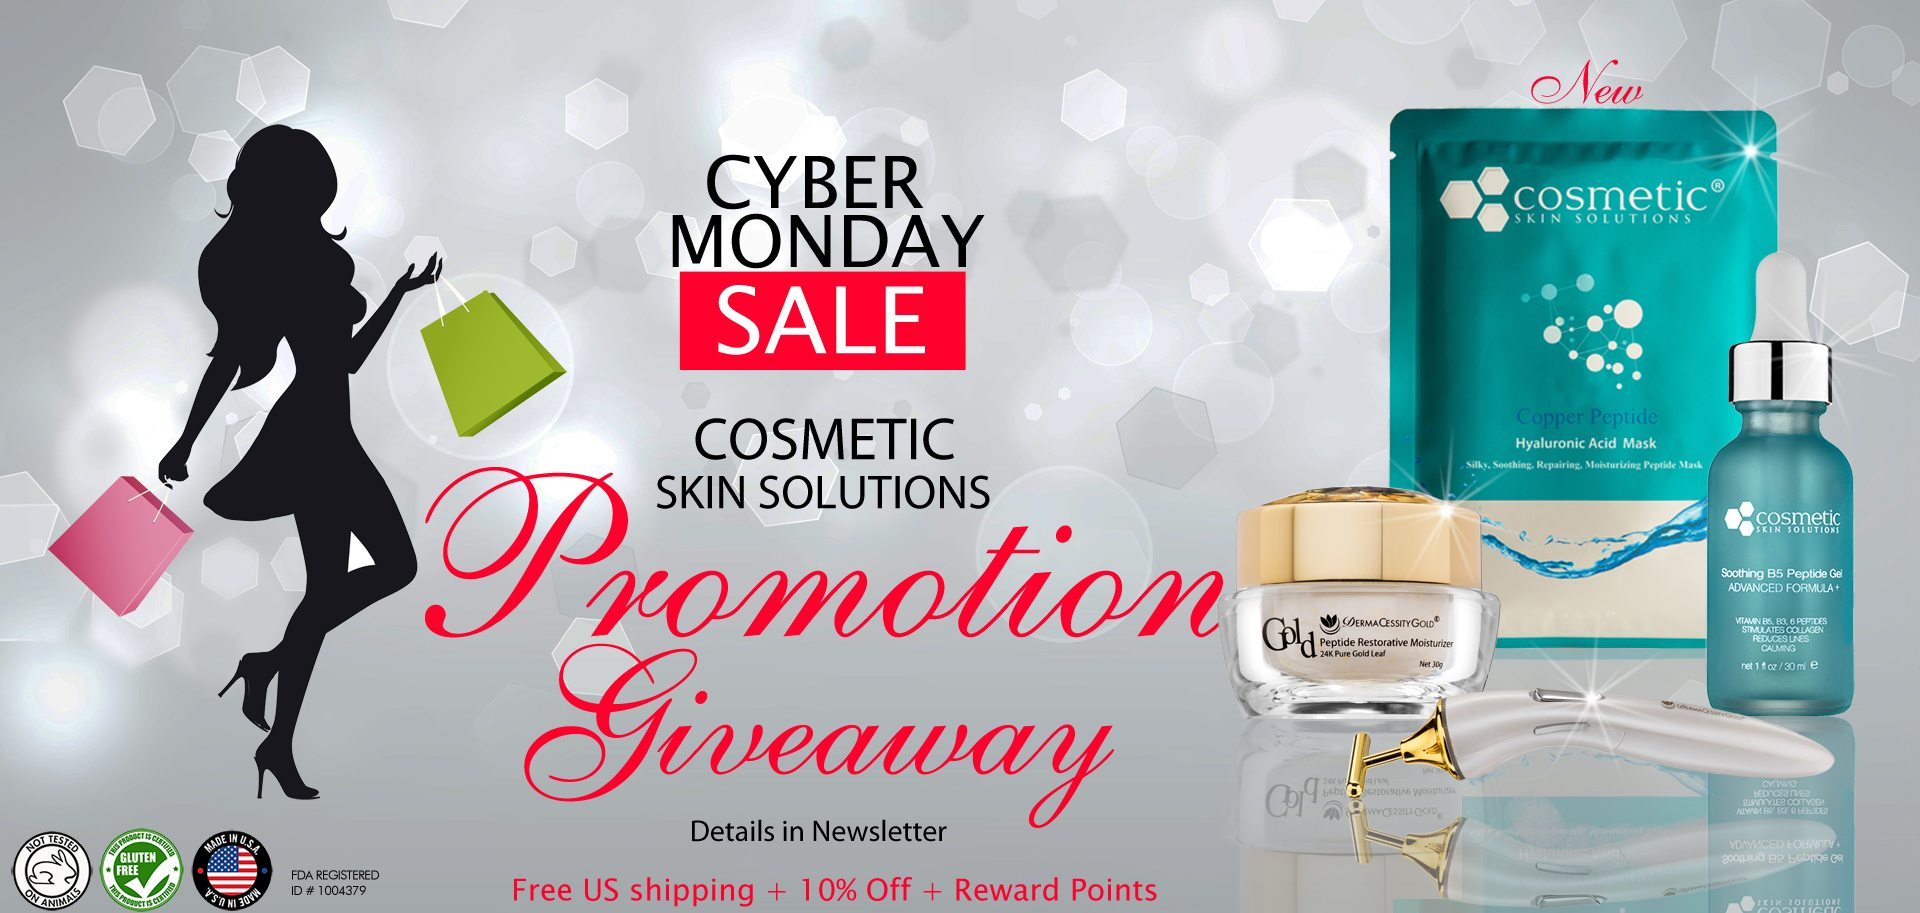 Cyber Monday Sale, Cosmetic Skin Solutions Promotion Giveaway, Details in Newsletter, Free US Shipping + 10% Off + Reward Points